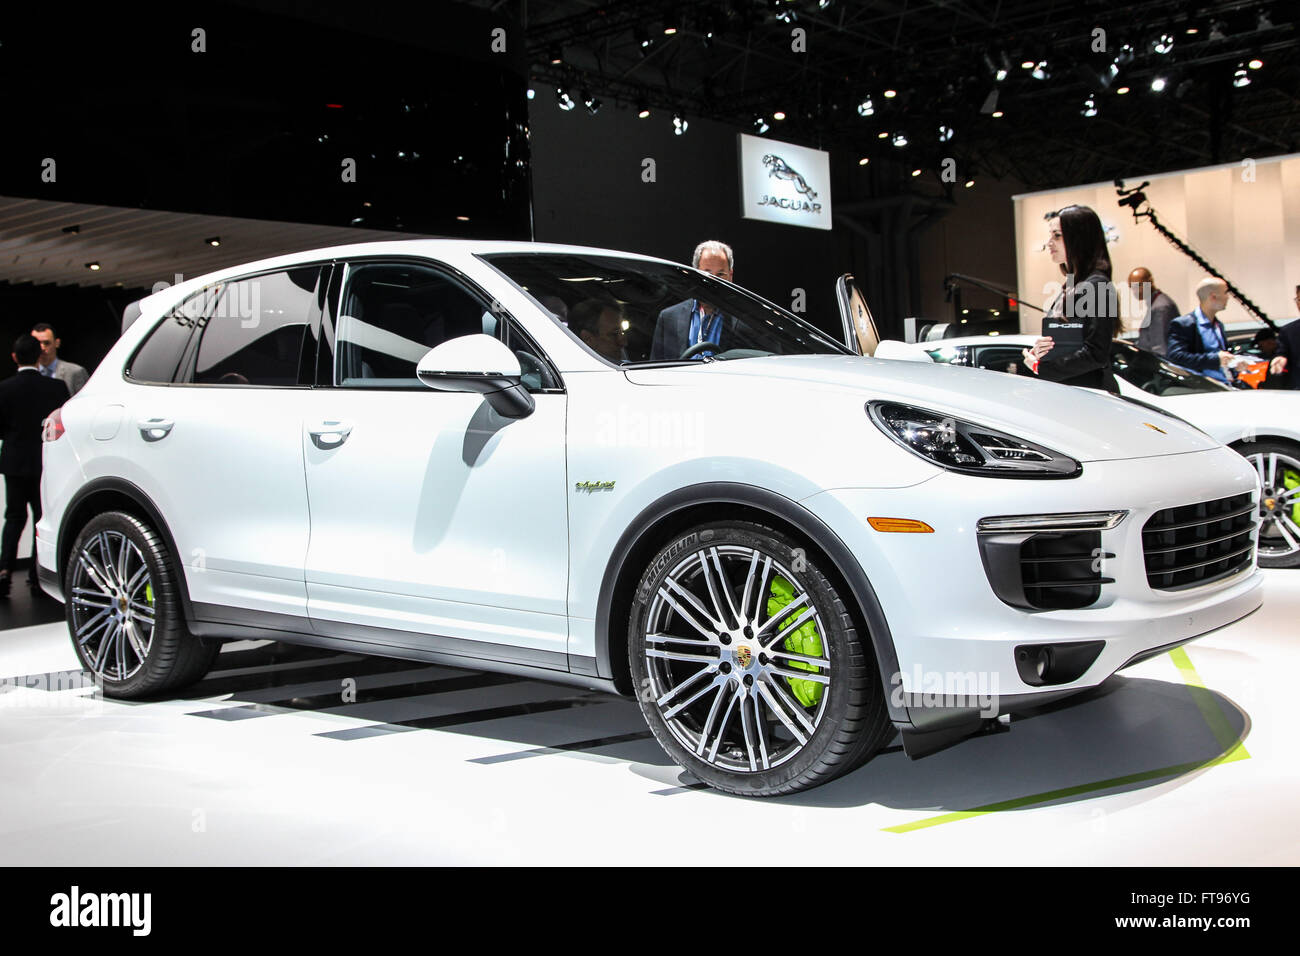 Manhattan, New York, USA. 23rd Mar, 2016. A Porsche Cayenne S e-hybrid shown at the New York International Auto - Stock Image